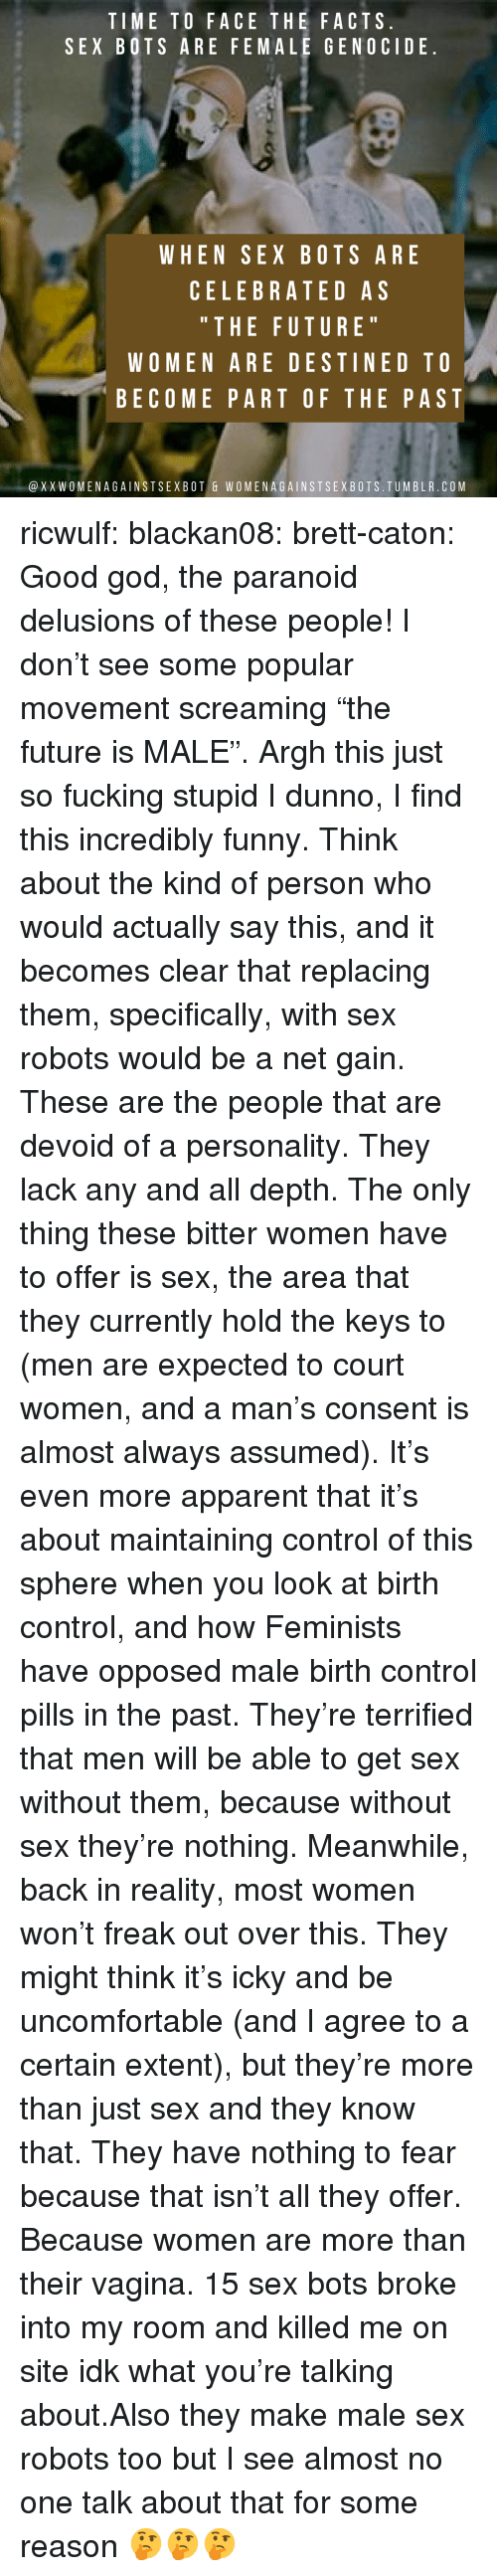 "Facts, Funny, and Future: TIME TO FACE THE FACTS  SEX BOTS ARE FEMALE GENOCIDE  WHEN SEX BOTS ARE  CELEBRATED AS  "" THE FUTURE  WOMEN ARE DESTINED TO  BECOME PART OF THE PAST  @XXWOMENAGAINSTSEXBOT & WOMENAGAINSTSEXBOTS.TUMBLR.COM ricwulf:  blackan08:   brett-caton: Good god, the paranoid delusions of these people! I don't see some popular movement screaming ""the future is MALE"". Argh this just so fucking stupid   I dunno, I find this incredibly funny. Think about the kind of person who would actually say this, and it becomes clear that replacing them, specifically, with sex robots would be a net gain. These are the people that are devoid of a personality. They lack any and all depth. The only thing these bitter women have to offer is sex, the area that they currently hold the keys to (men are expected to court women, and a man's consent is almost always assumed). It's even more apparent that it's about maintaining control of this sphere when you look at birth control, and how Feminists have opposed male birth control pills in the past.  They're terrified that men will be able to get sex without them, because without sex they're nothing. Meanwhile, back in reality, most women won't freak out over this. They might think it's icky and be uncomfortable (and I agree to a certain extent), but they're more than just sex and they know that. They have nothing to fear because that isn't all they offer. Because women are more than their vagina.   15 sex bots broke into my room and killed me on site idk what you're talking about.Also they make male sex robots too but I see almost no one talk about that for some reason 🤔🤔🤔"